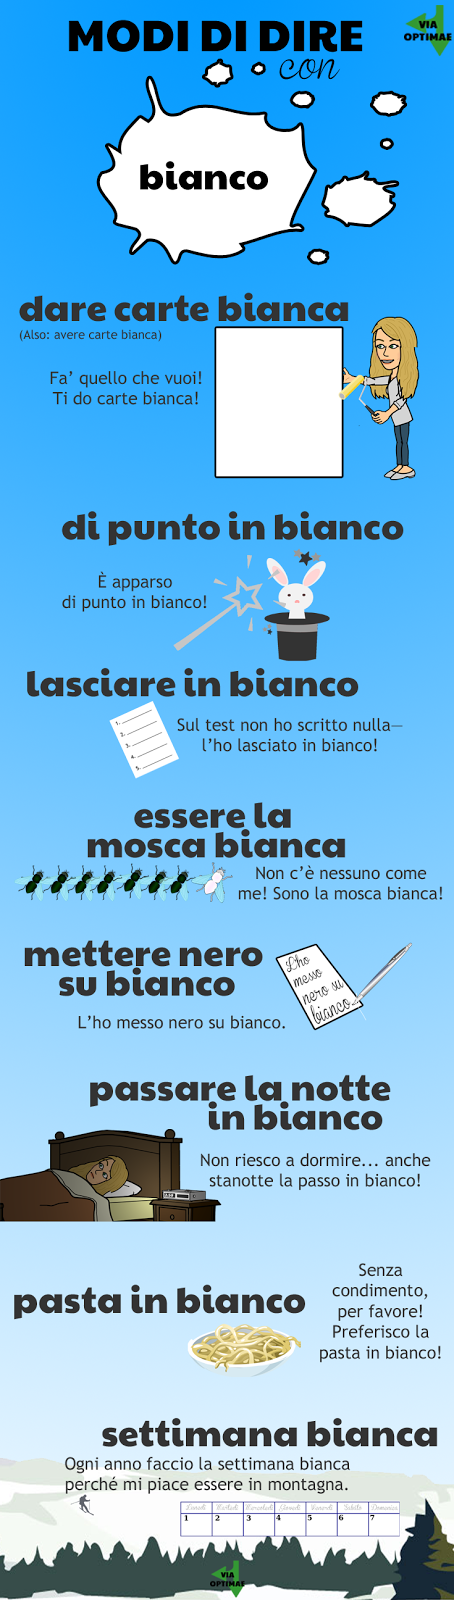 Modi di dire: BIANCO, idiomatic expressions, examples, and illustrations, learn Italian, Via Optimae, www.viaoptimae.com